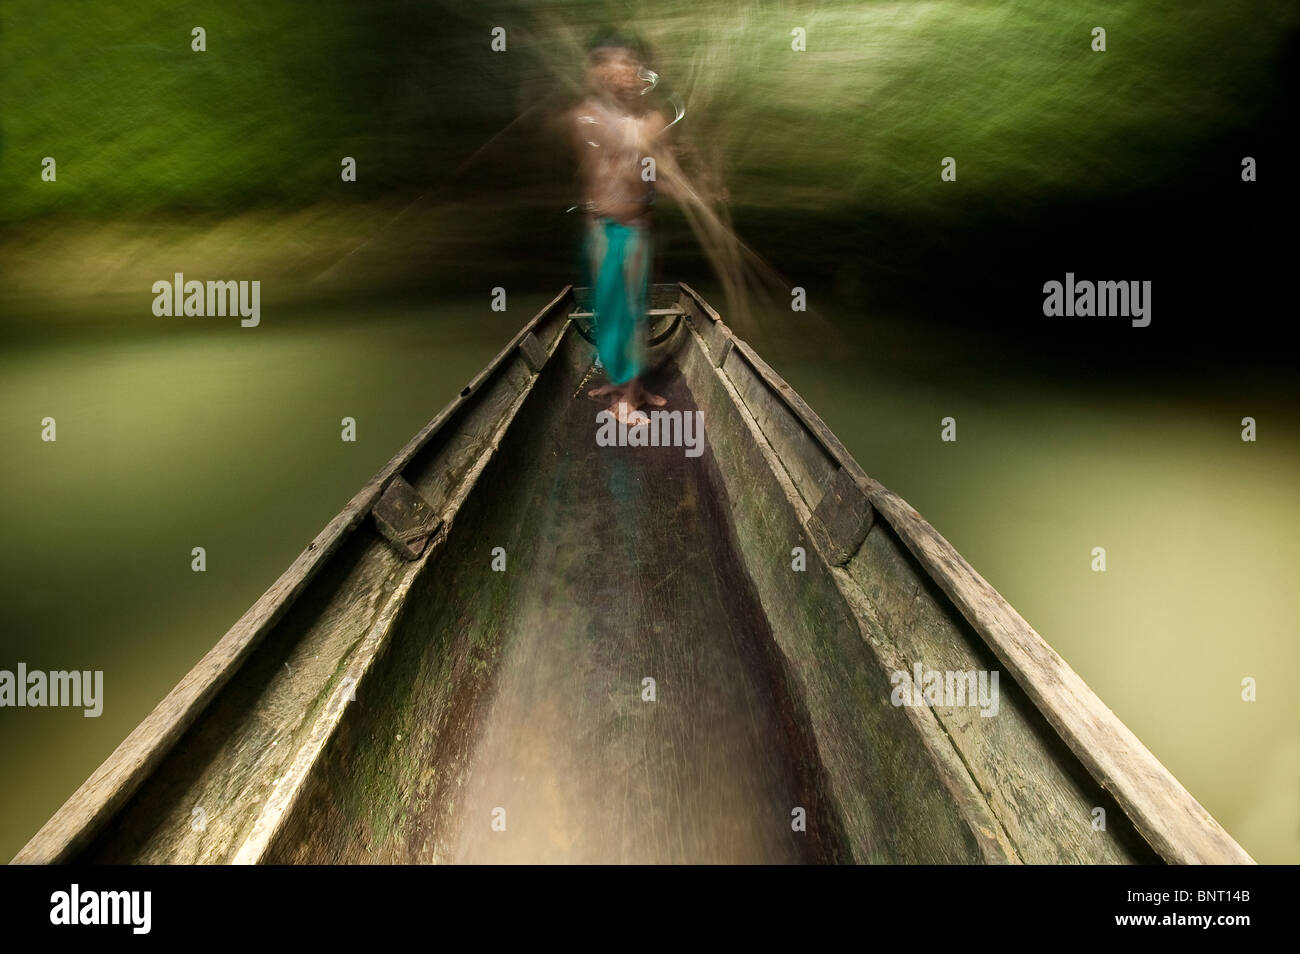 Embera indian man in his boat on Mogue river in the Darien province, Republic of Panama. - Stock Image